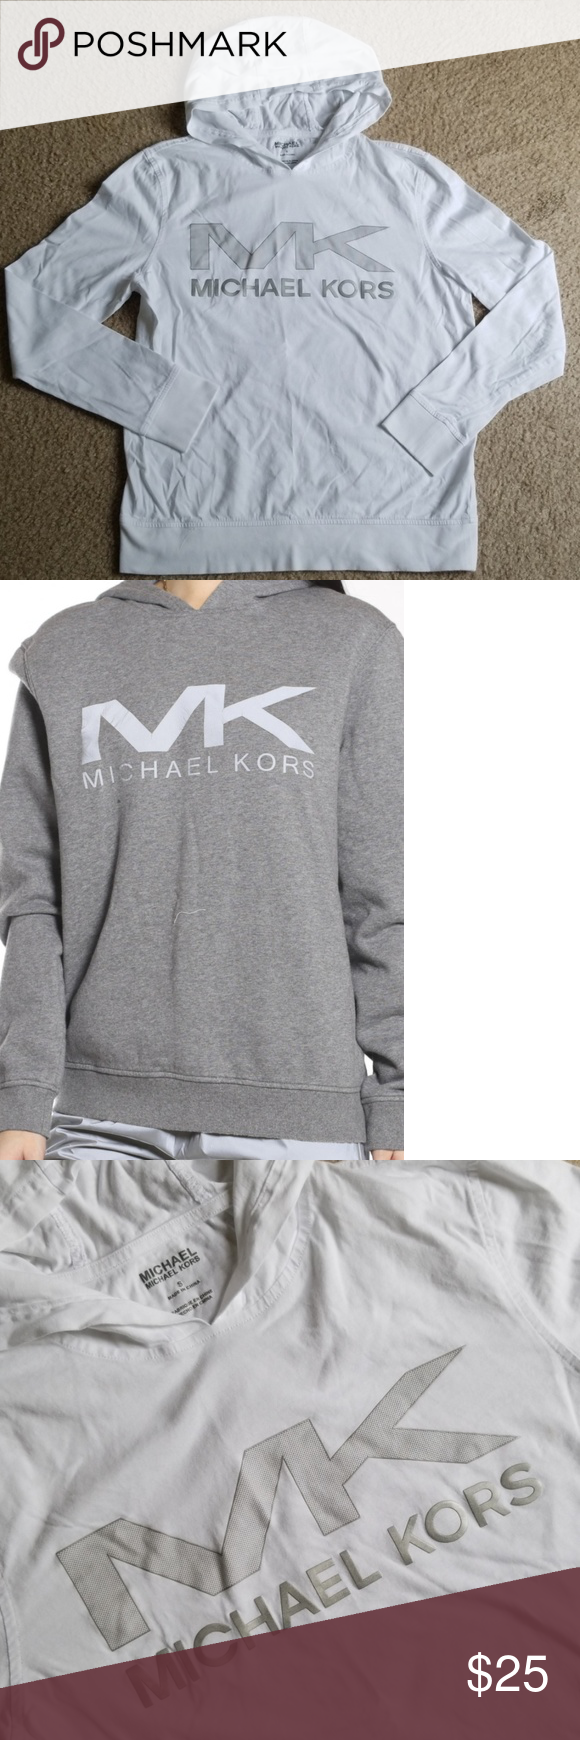 MICHAEL KORS Hoodie Cotton Sweatshirt Size S (With images